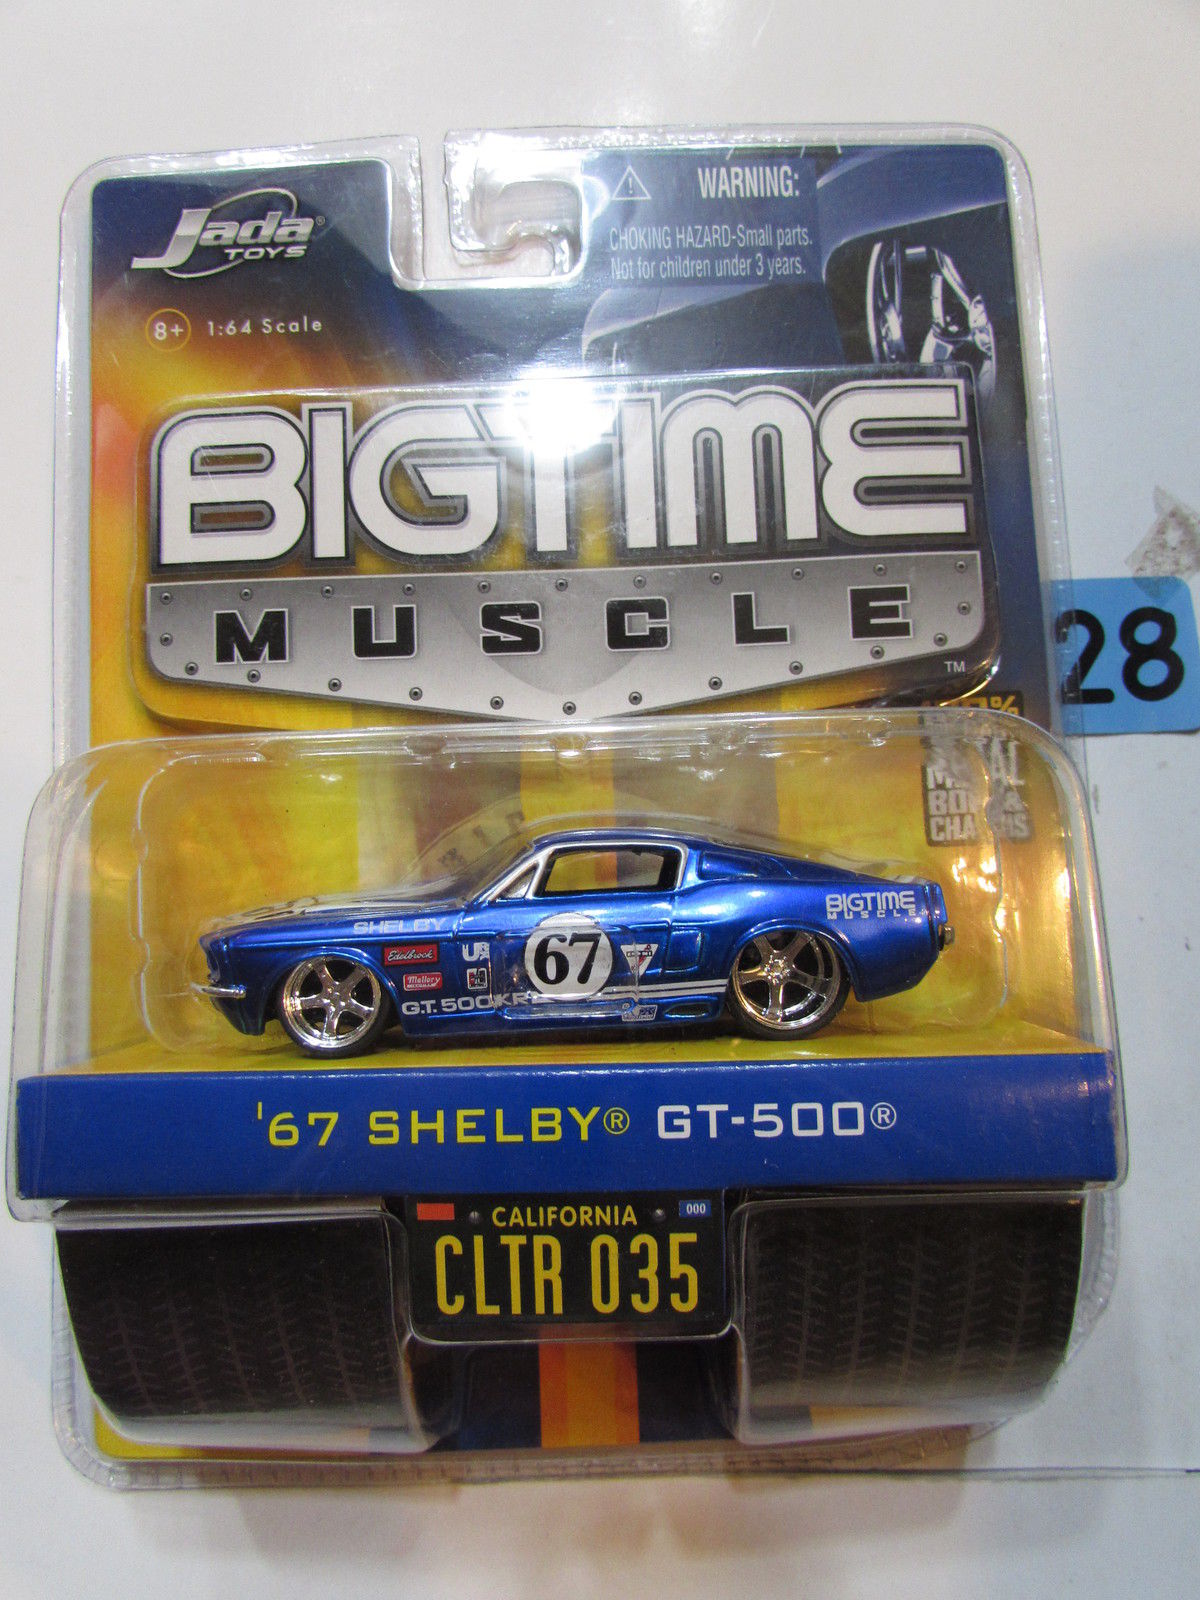 JADATOYS BIGTIME MUSCLE '67 SHELBY GT-500 CLTR 035 SCALE 1:64